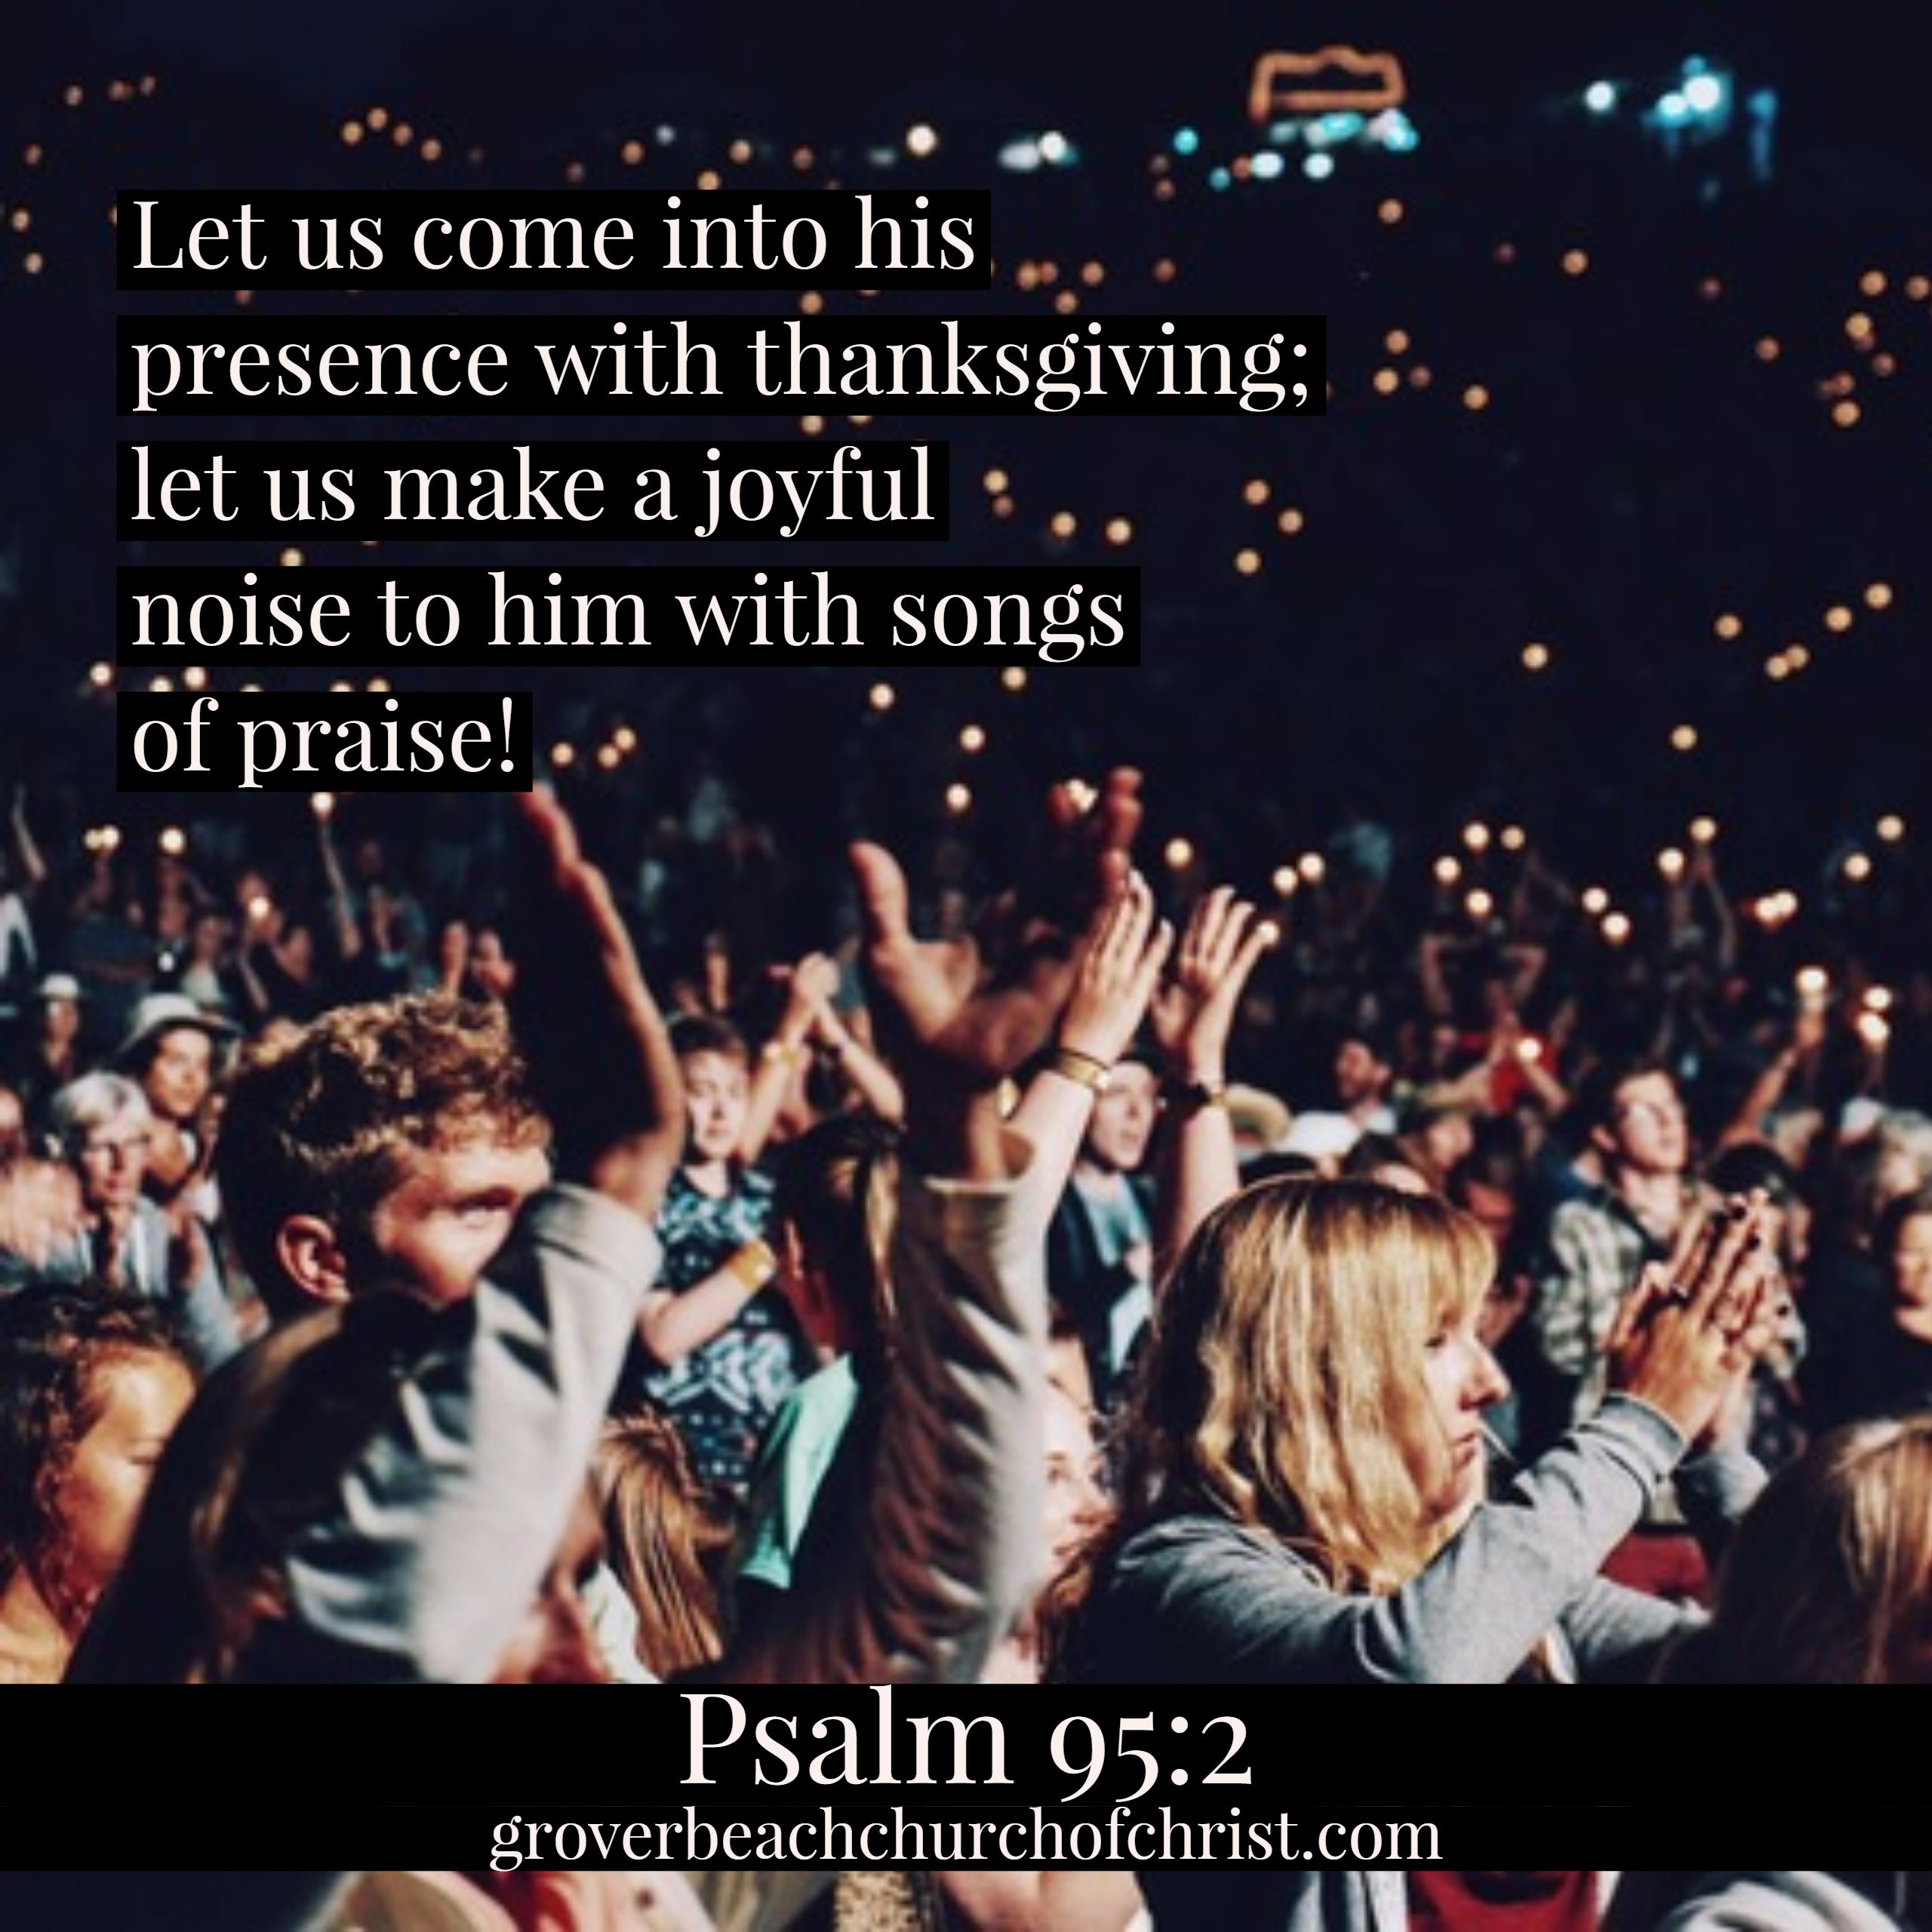 psalm-95-2-let-us-come-into-his-presence